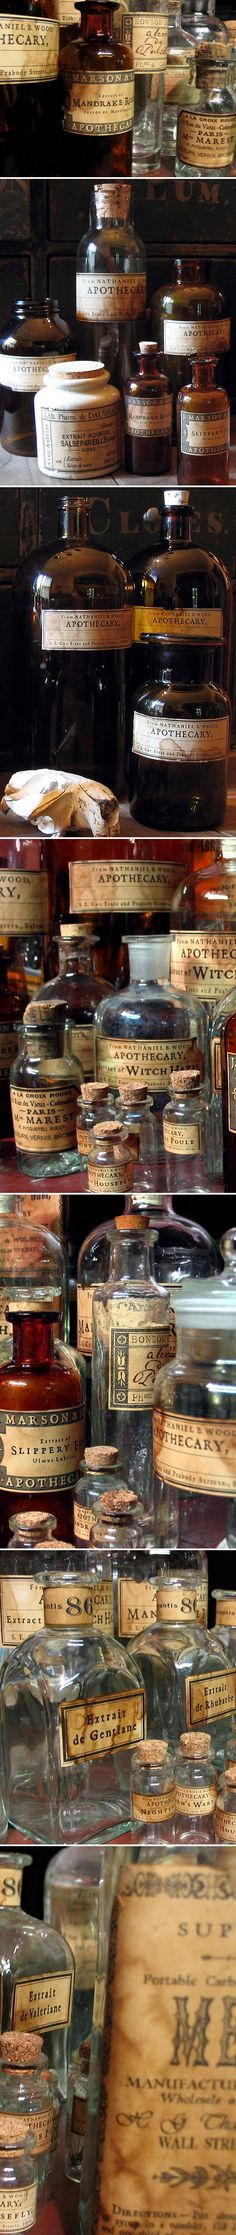 xx..tracy porter..poetic wanderlust...- old apothecary bottle  #apothecary #apothecarybottle